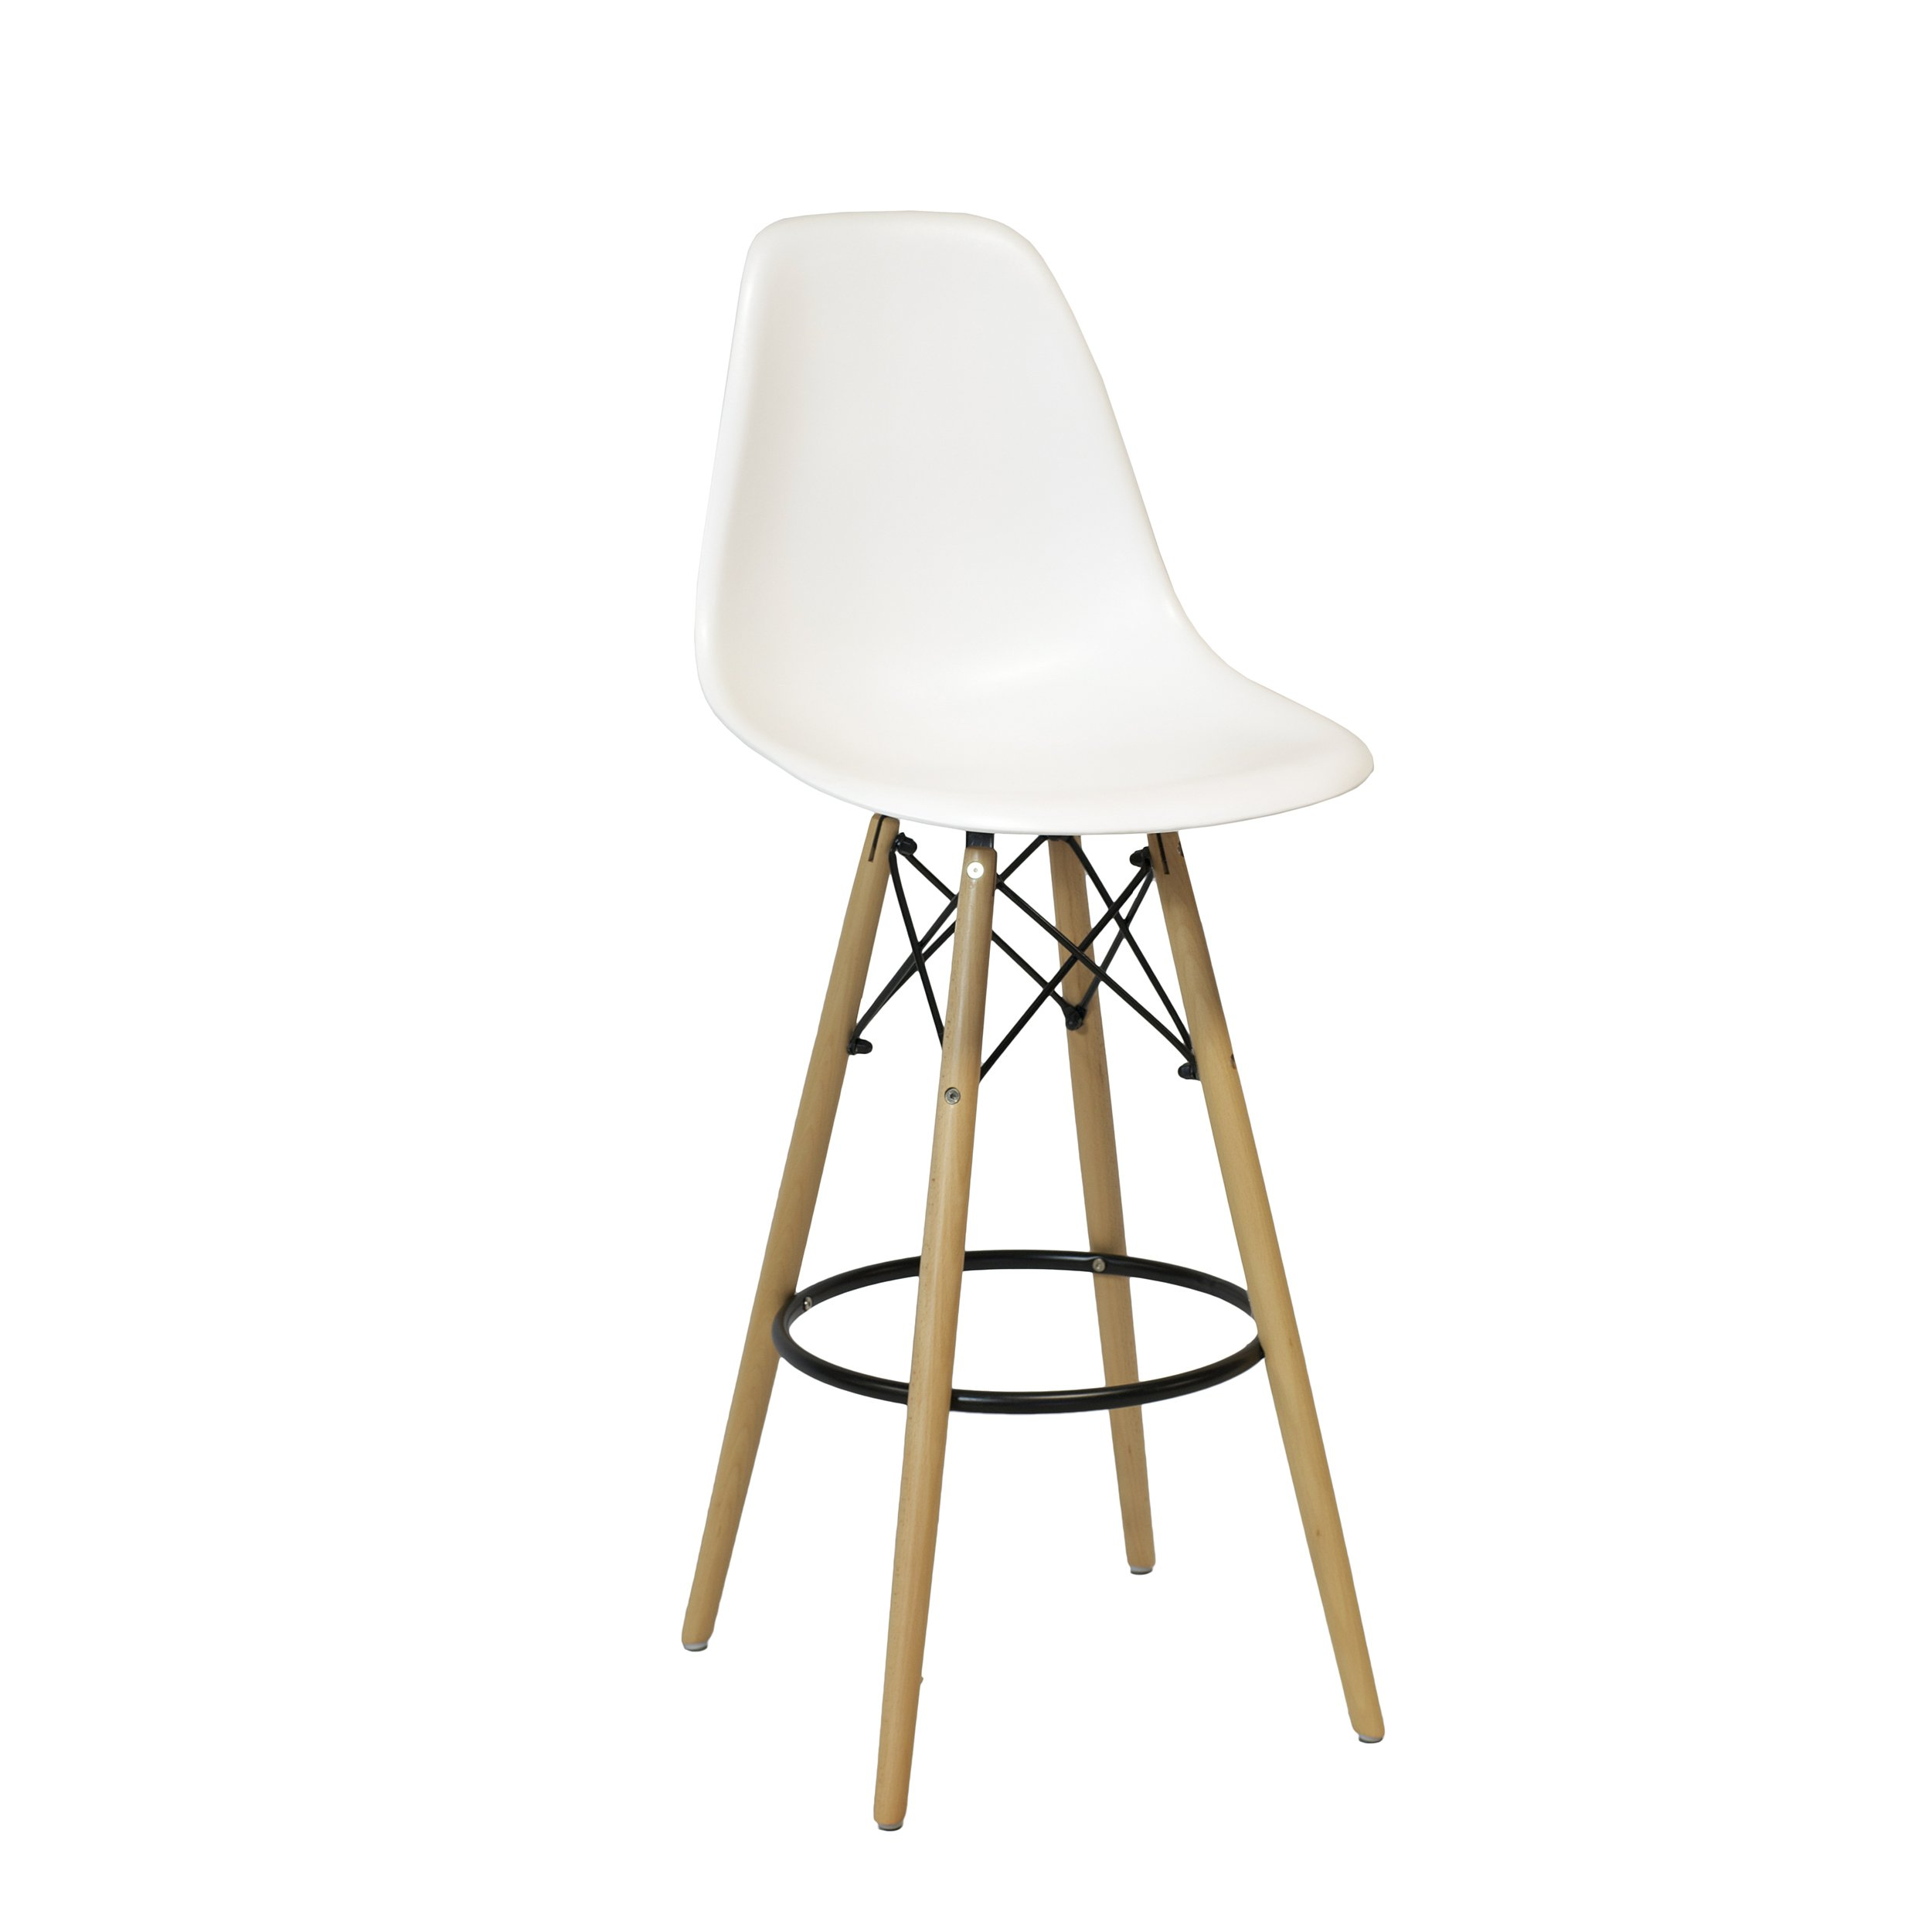 Design Tree Home Charles Eames Style DSW Counter Stool, White